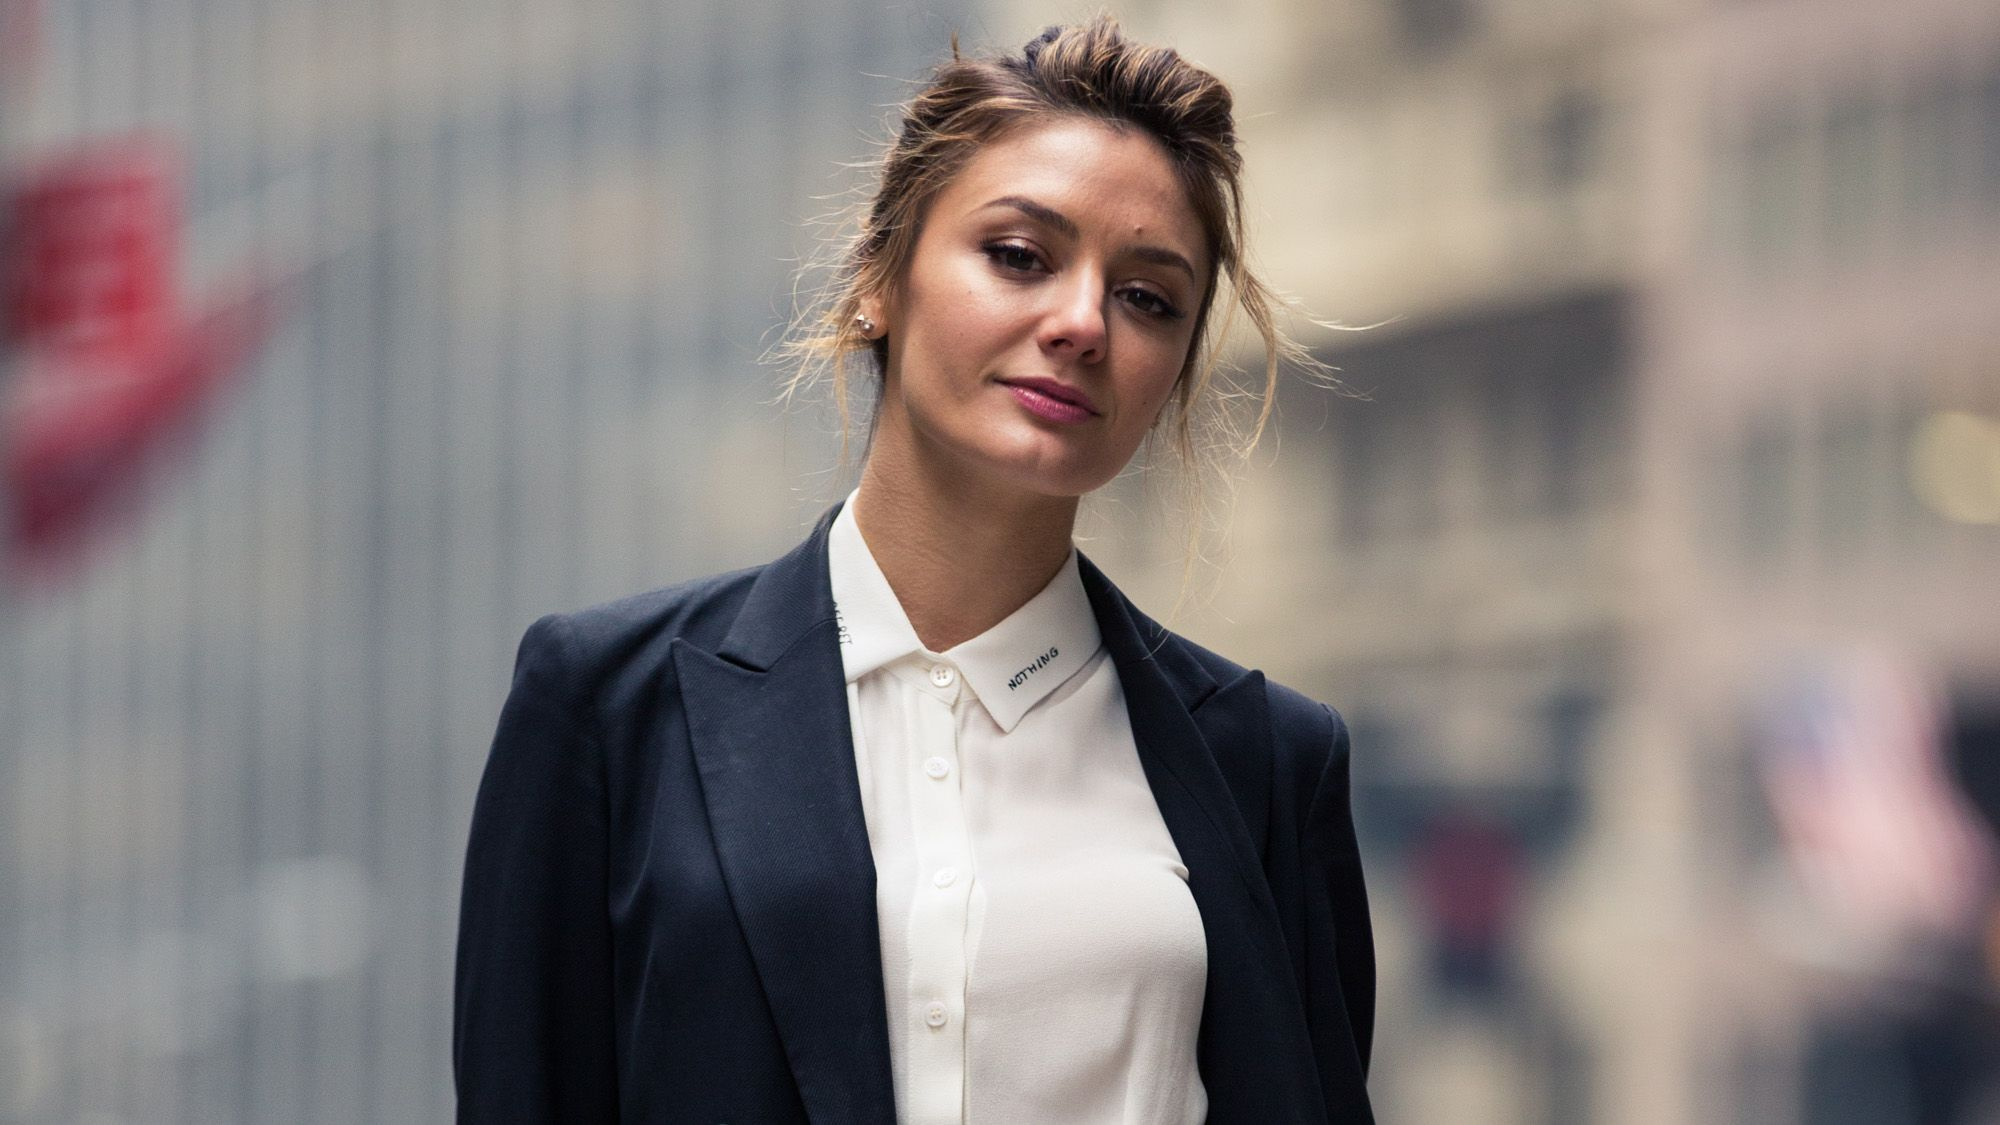 Christine Evangelista Knows You're Comparing Her New Show to Scientology